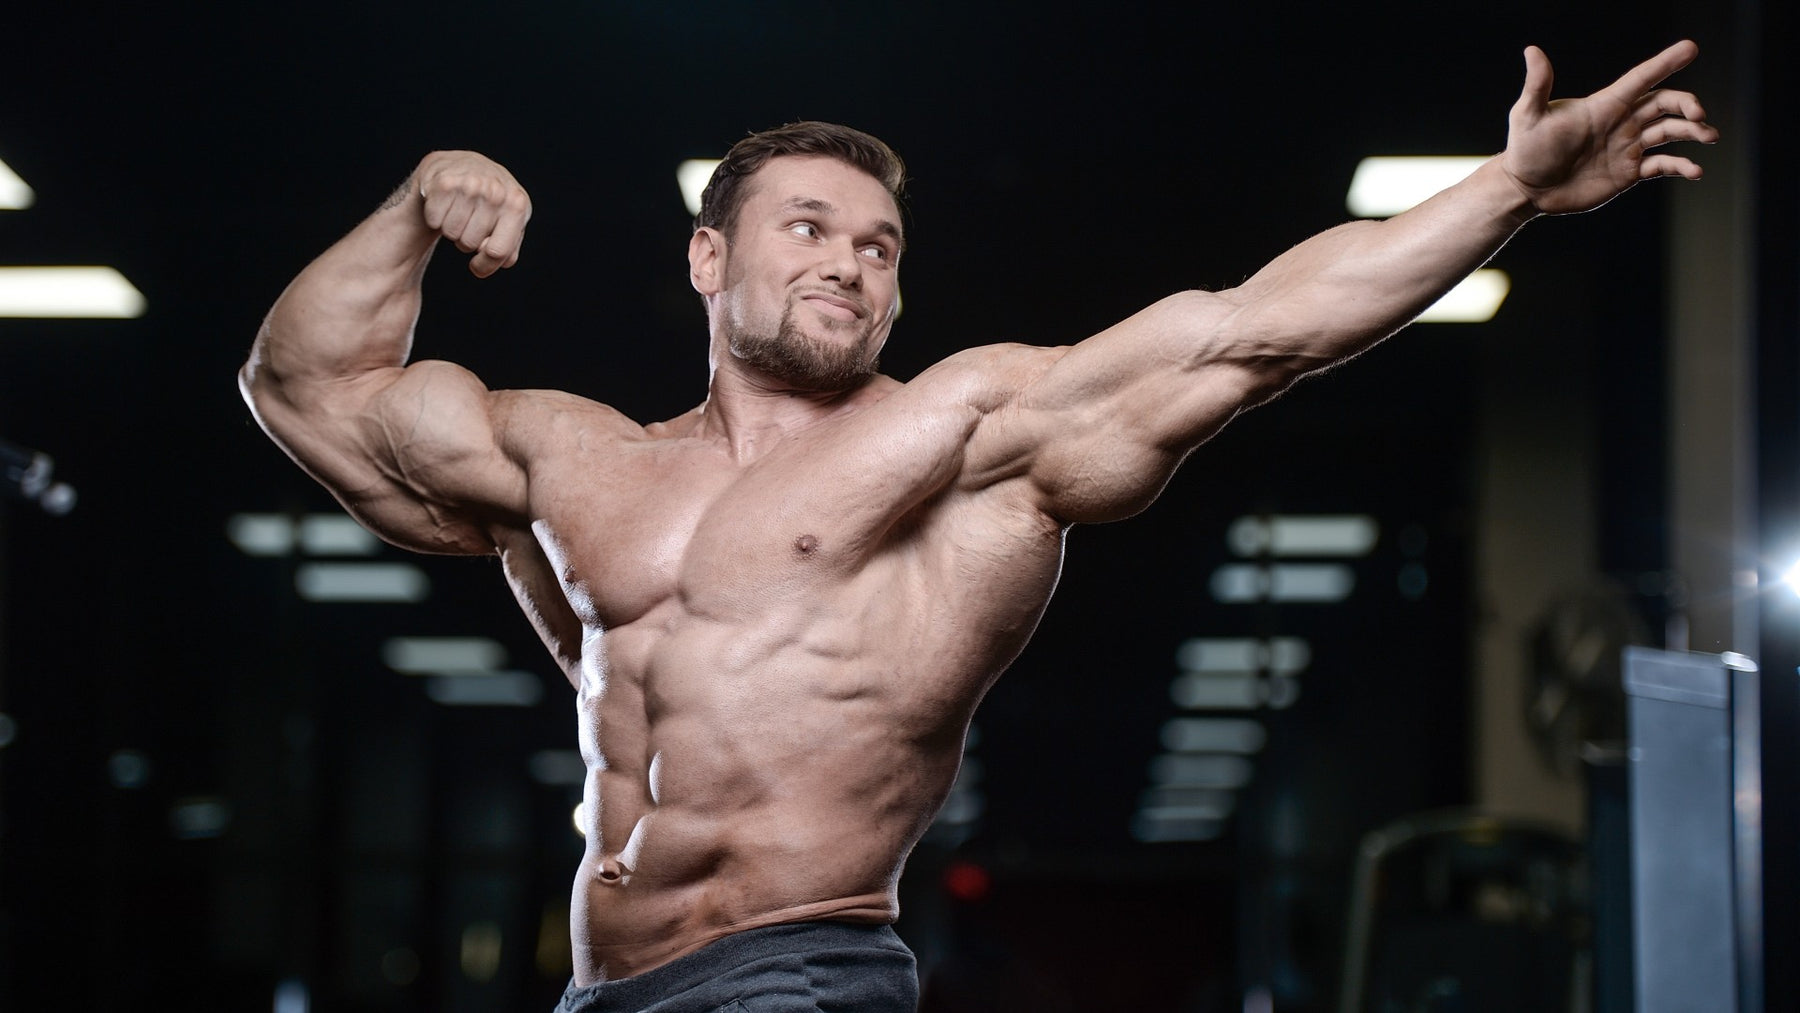 11 Effective Tips to Build Muscle Quickly